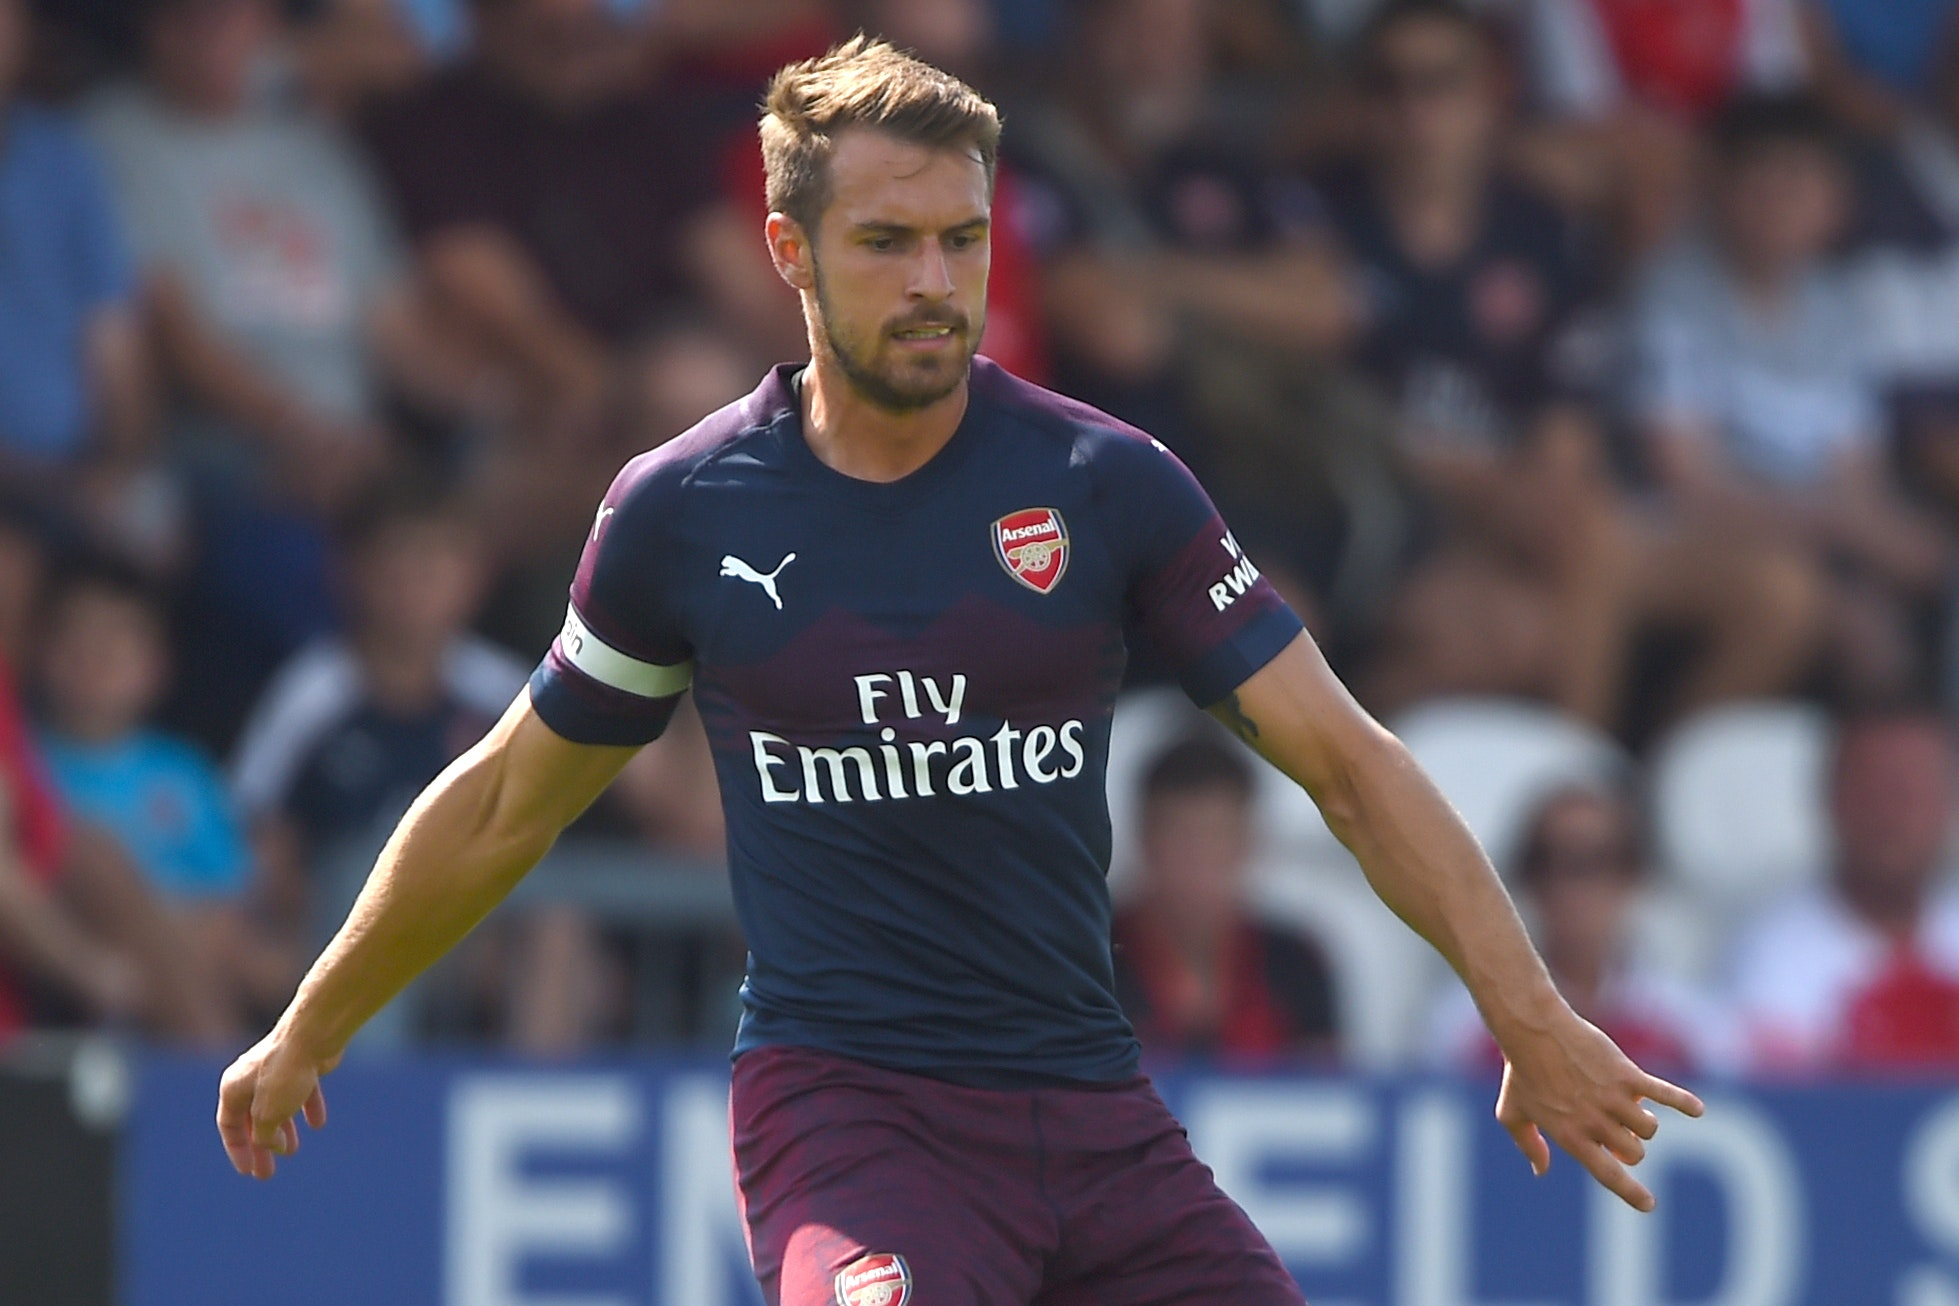 Unai Emery gives unconvincing response to Aaron Ramsey's contract situation